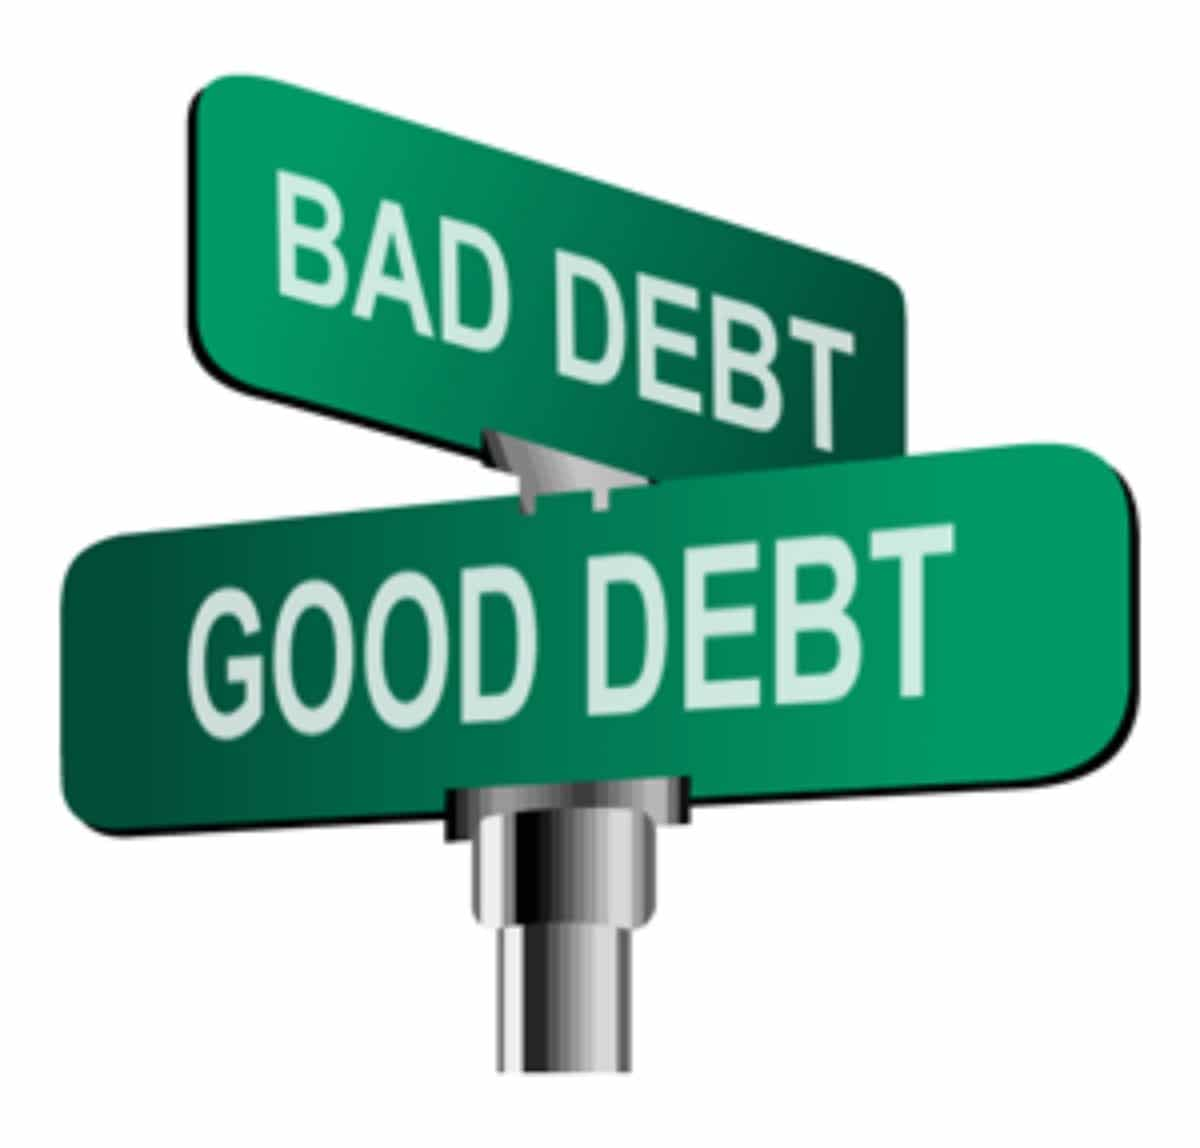 Good Debt vs Bad Debt